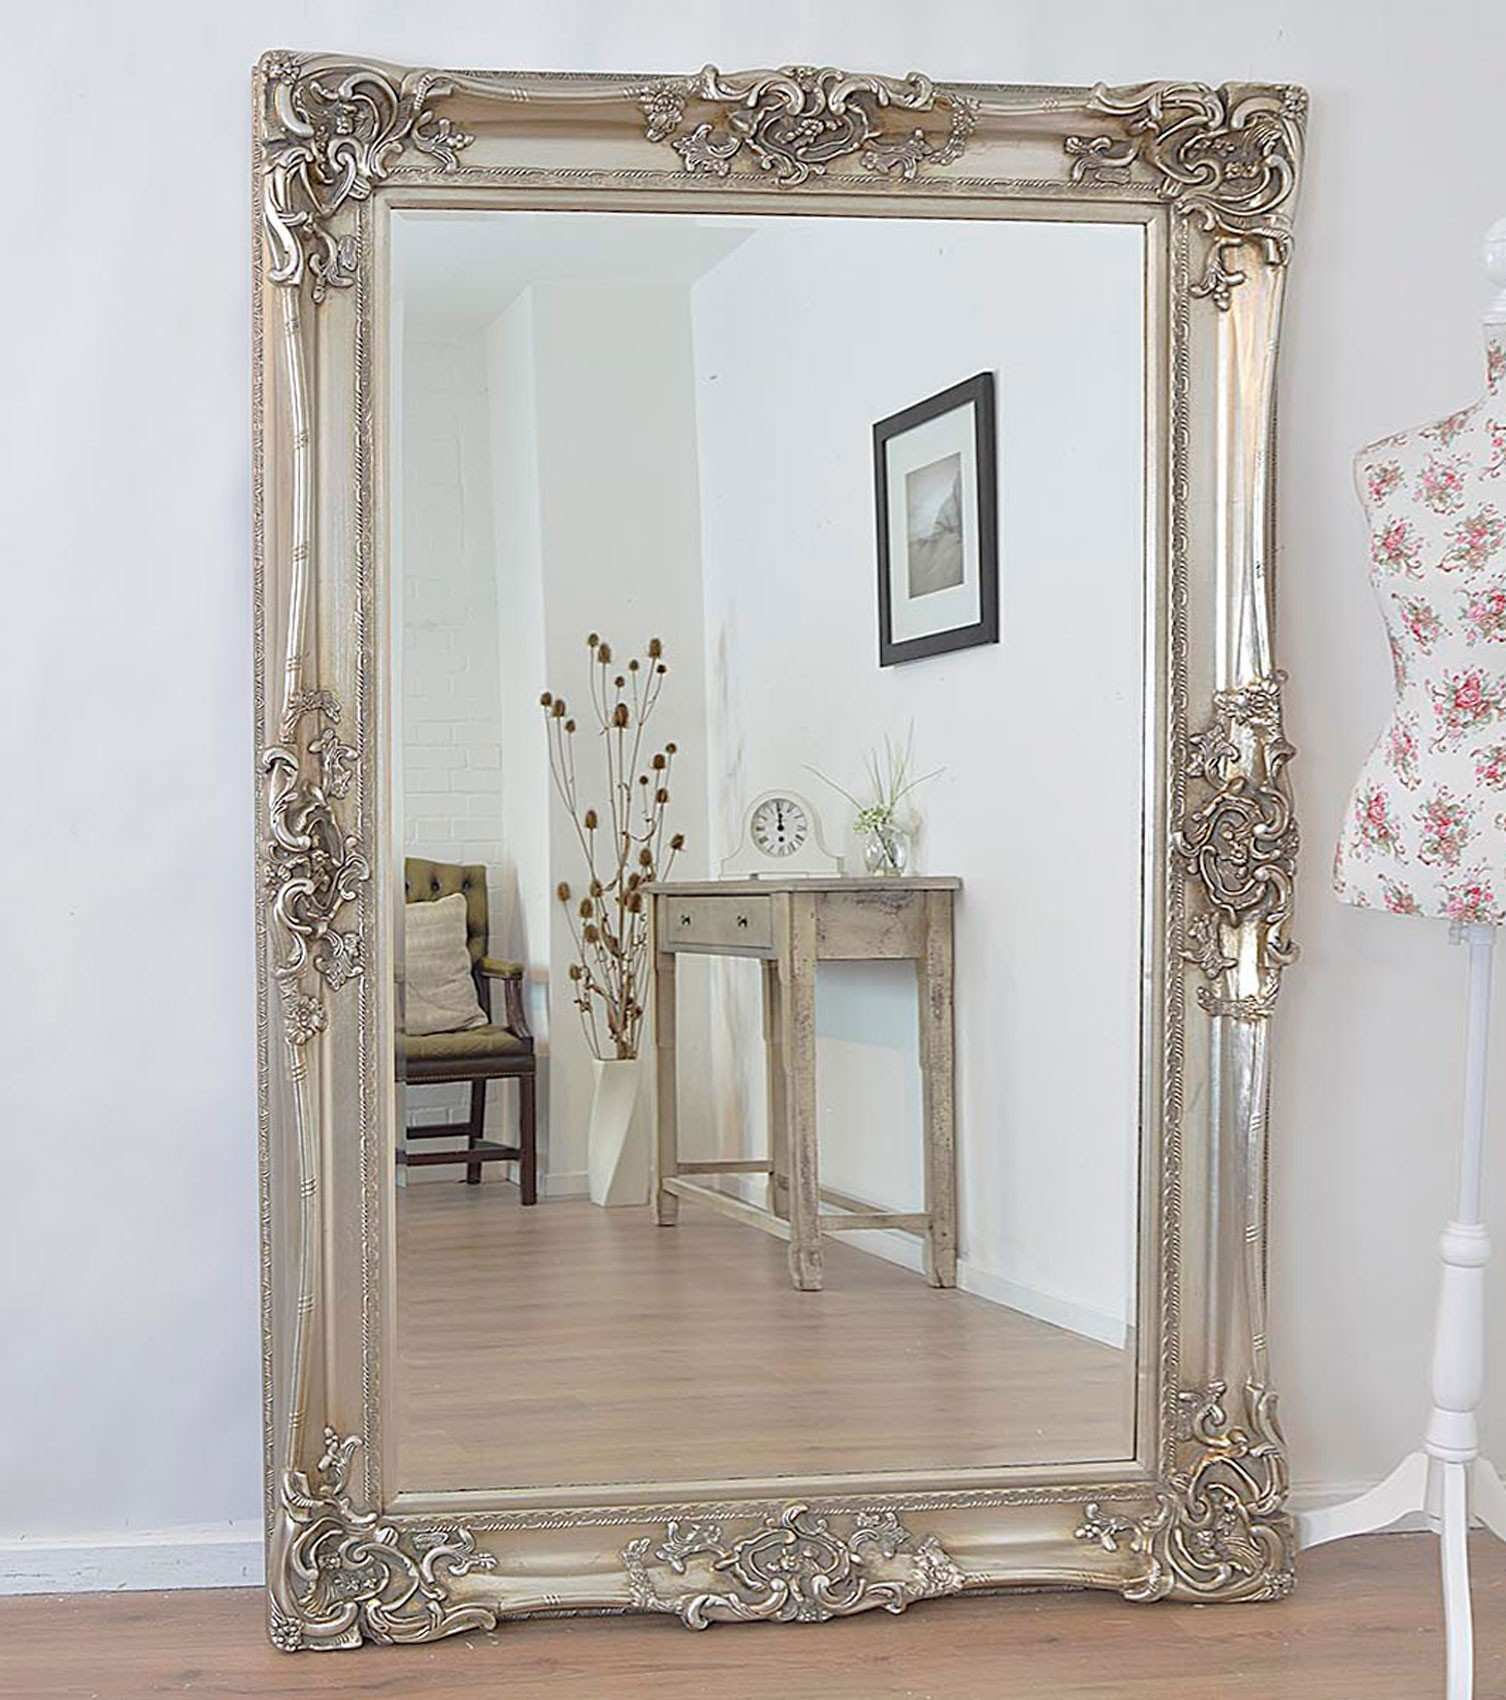 Fresh Ideas Home Depot Floor Mirror Best Home Plans and